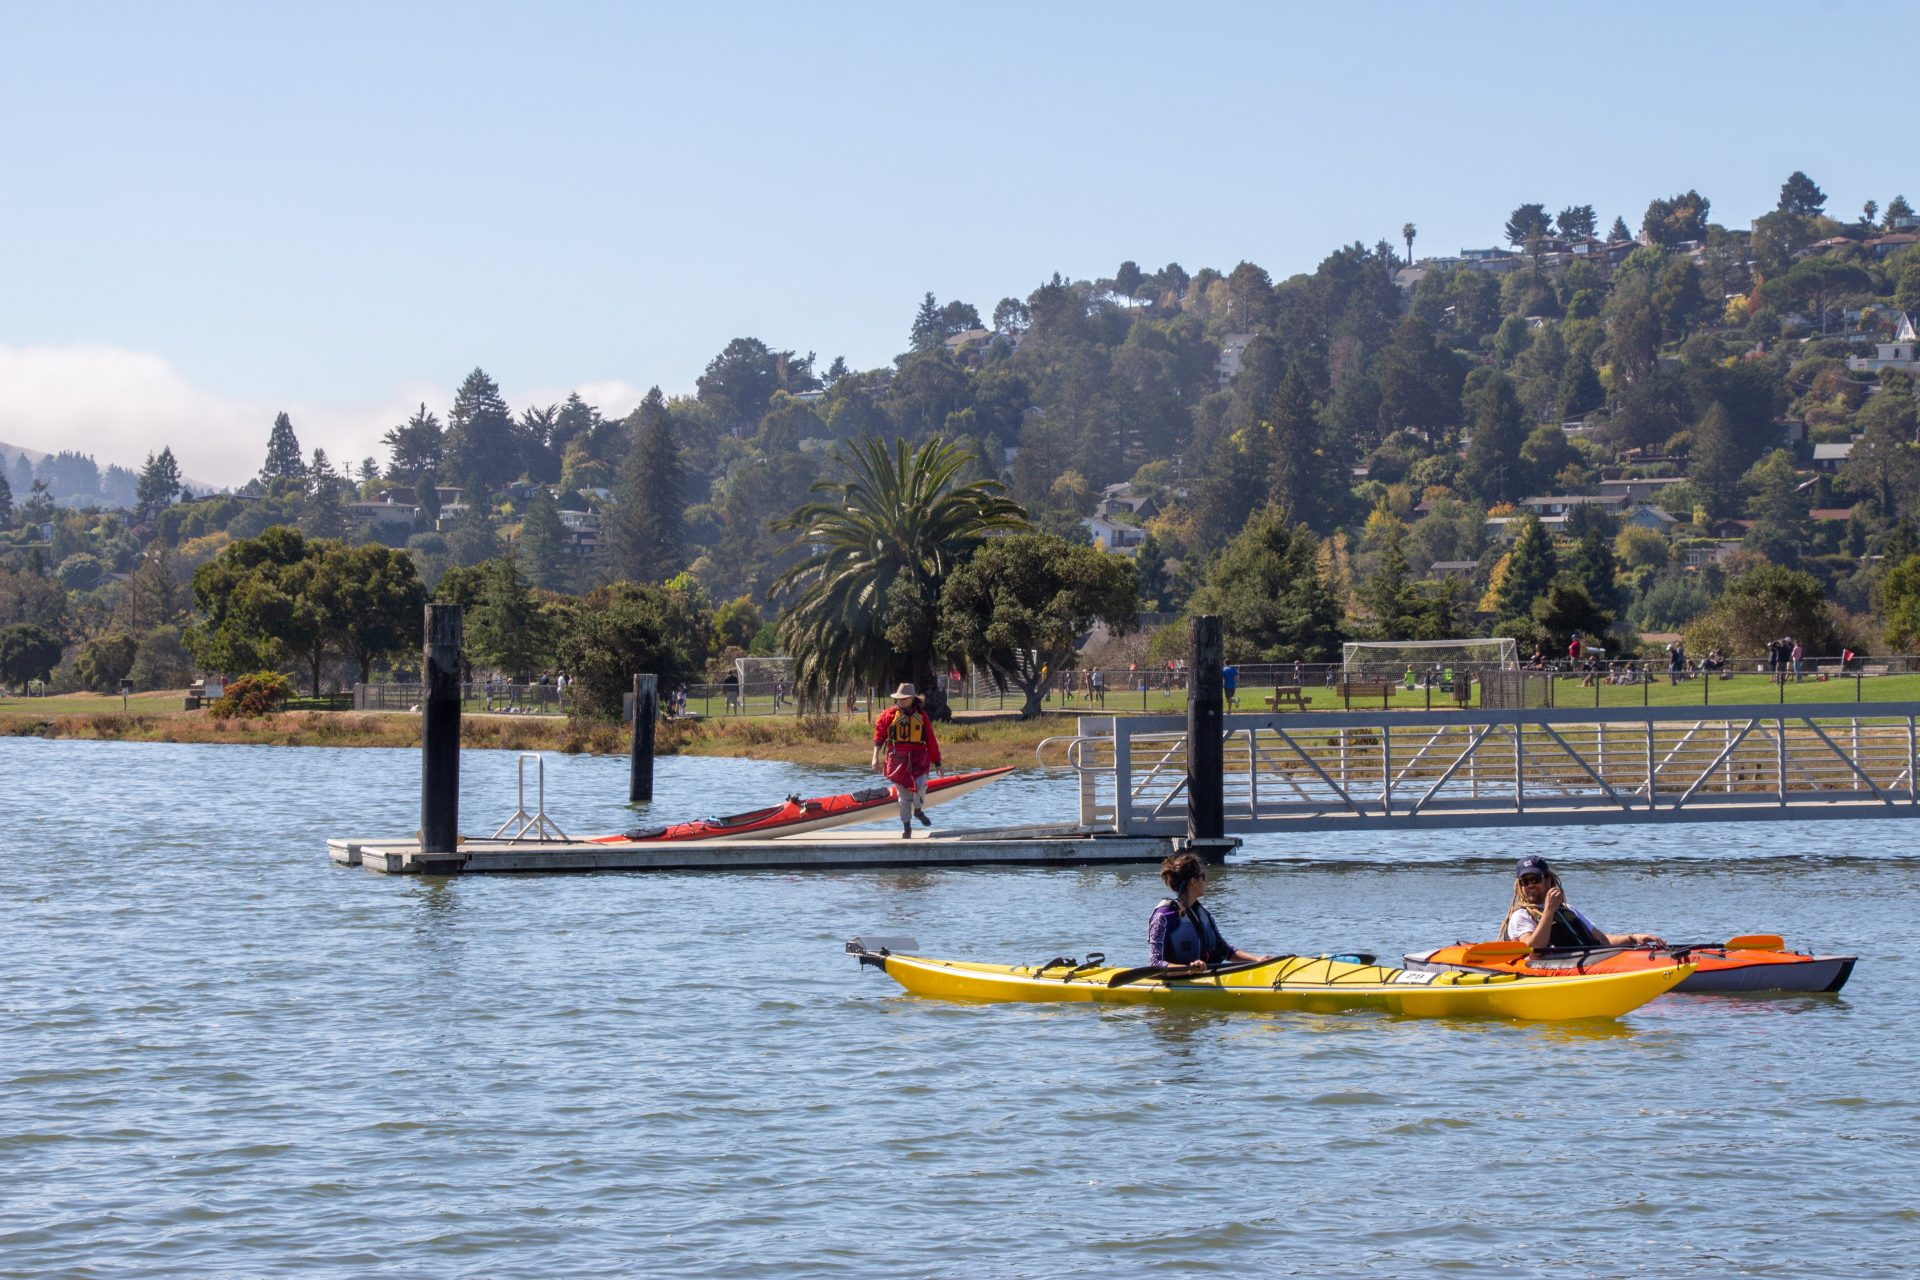 two single kayakers in foreground, third person with kayak on pier in distance